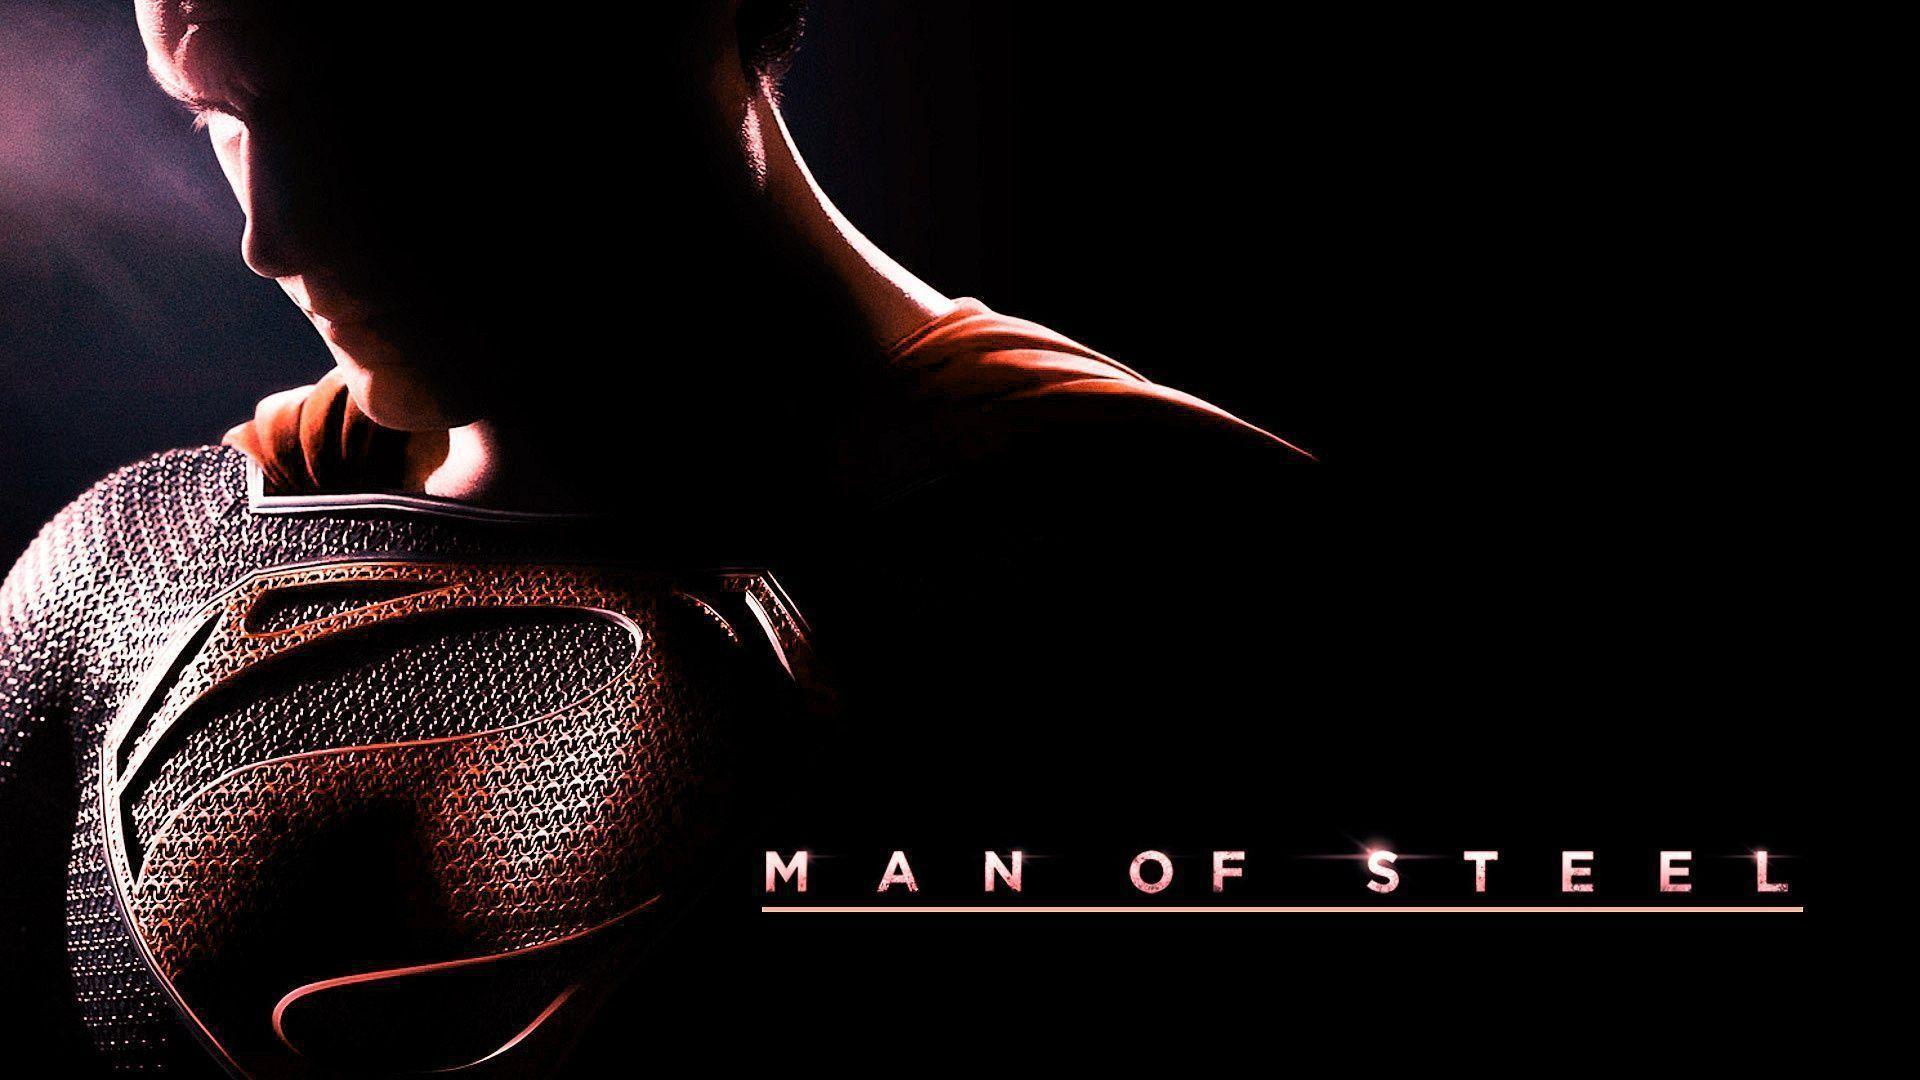 Man of Steel HD HD Desktop Wallpaper for K Ultra HD